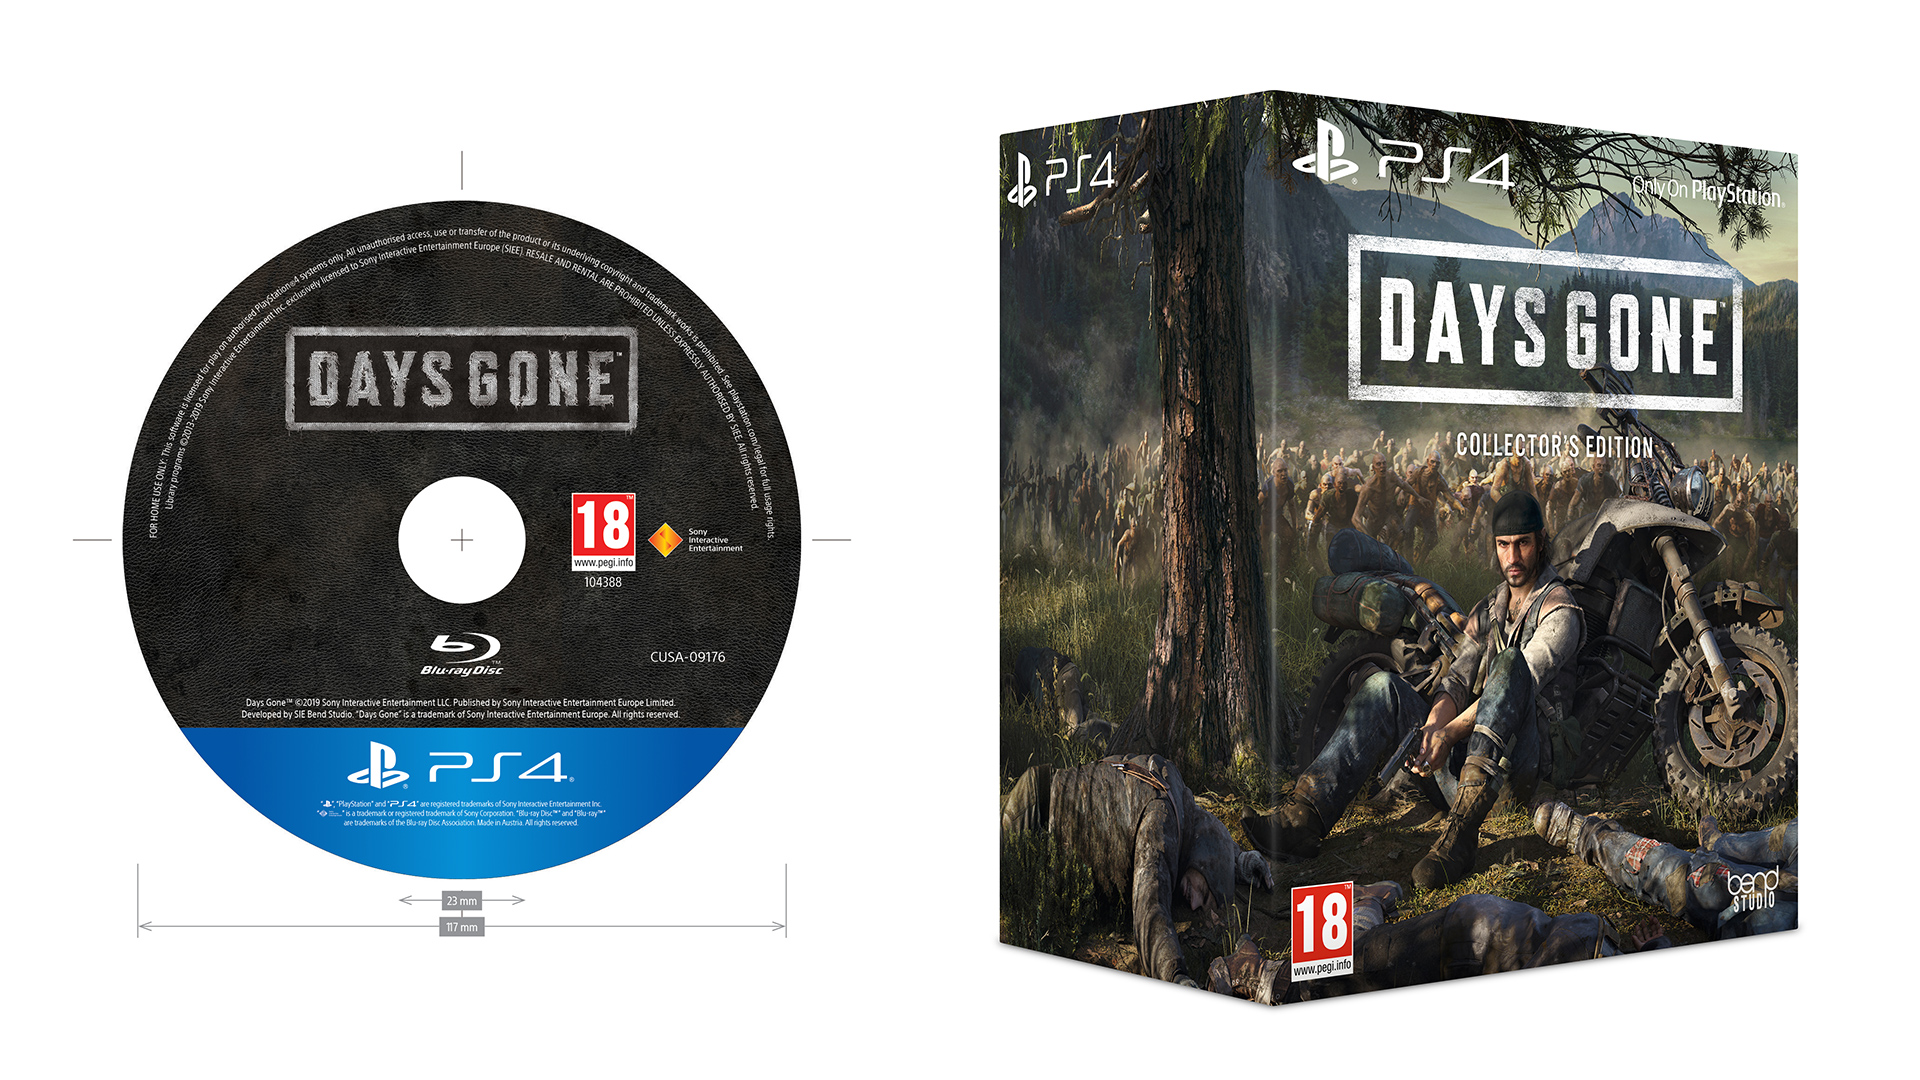 days_Gone_Sony_Disc_Packaging